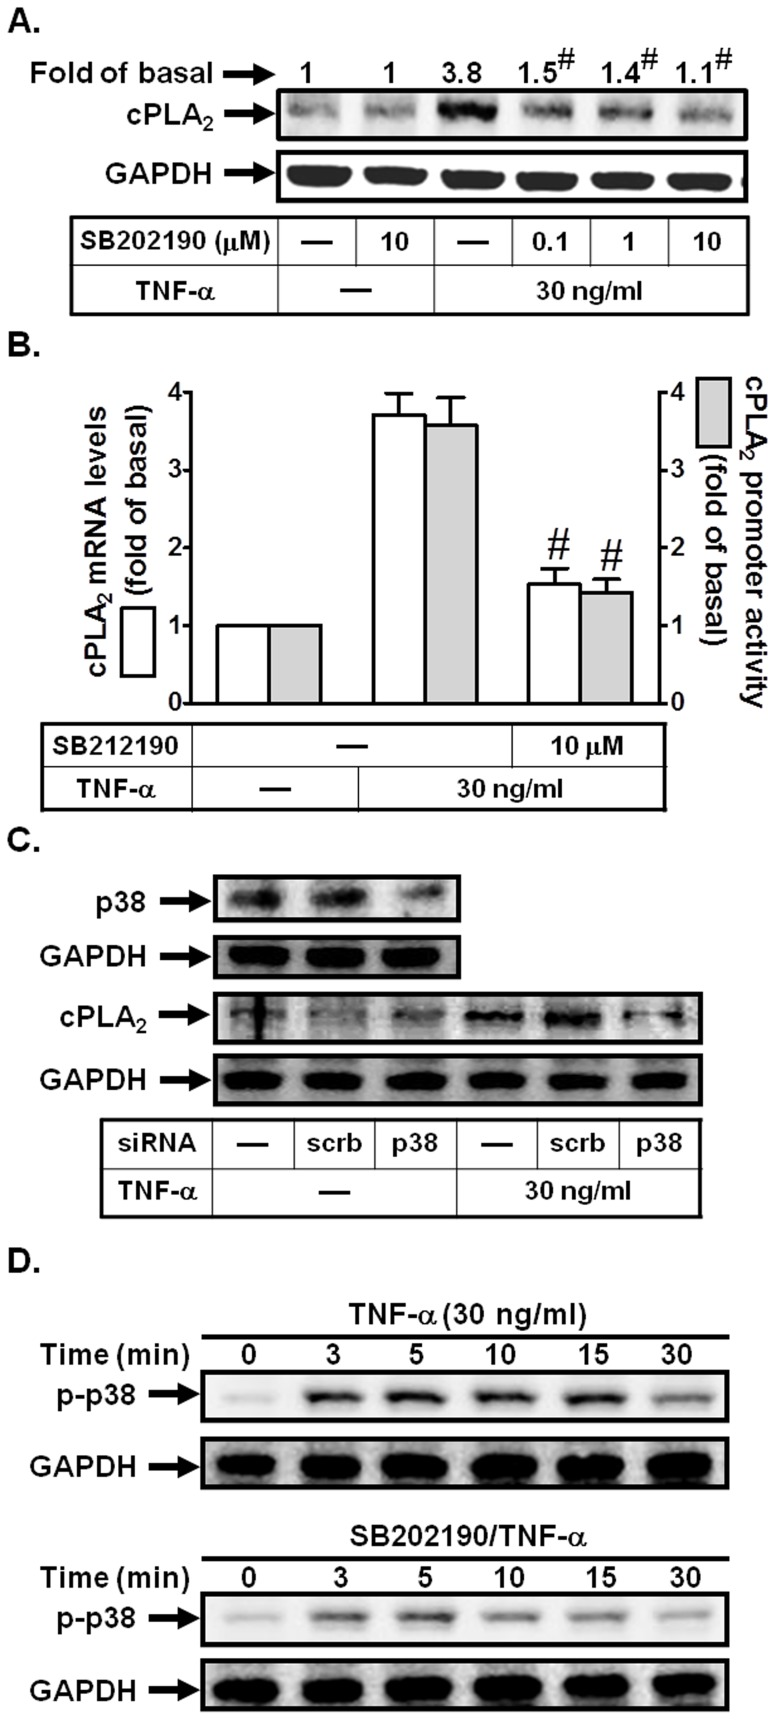 p38 MAPK is involved in TNF-α-induced cPLA 2 expression. (A) Cells were pretreated with SB202190 for 1 h, and then incubated with TNF-α for 24 h. The protein levels of cPLA 2 were determined by Western blot. (B) Cells were pretreated with SB202190 (10 µM) for 1 h, and then incubated with TNF-α for 6 h. cPLA 2 mRNA levels and promoter activity were determined. (C) Cells were transfected with scrambled or p38 siRNA, and then incubated with TNF-α for 24 h. The protein levels of p38 and cPLA 2 were determined. (D) Cells were pretreated with or without SB202190 (10 µM) for 1 h, and then incubated with TNF-α for the indicated time intervals. The levels of phospho-p38 MAPK were determined. Data are expressed as mean±S.E.M. of three independent experiments. # P